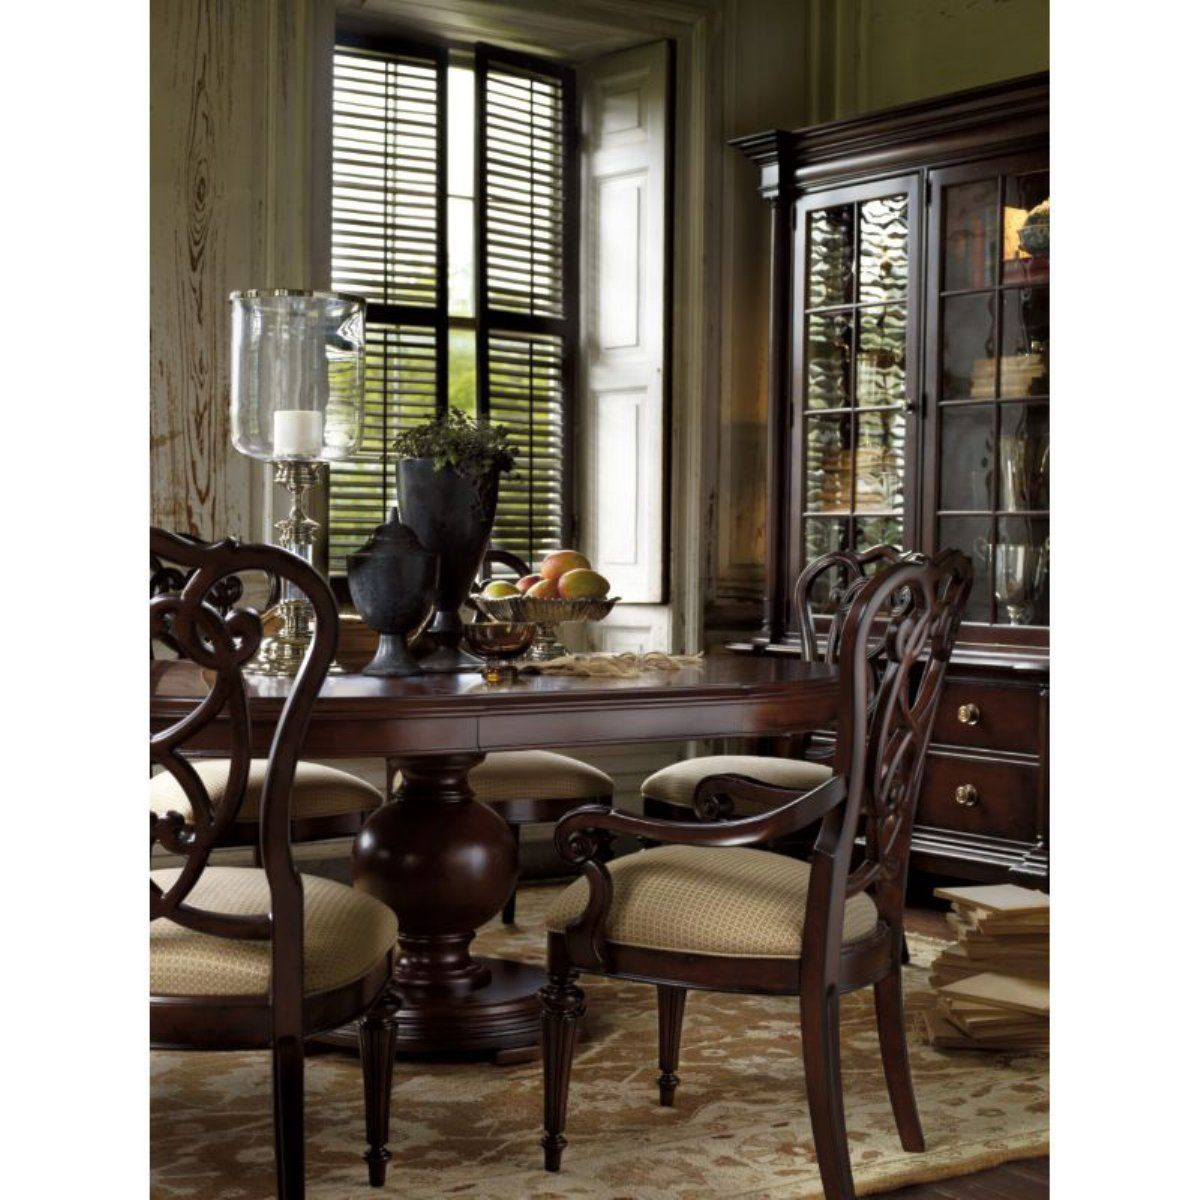 Classic Mcm Stanley Dining Table With 6 Danish Style Chairs